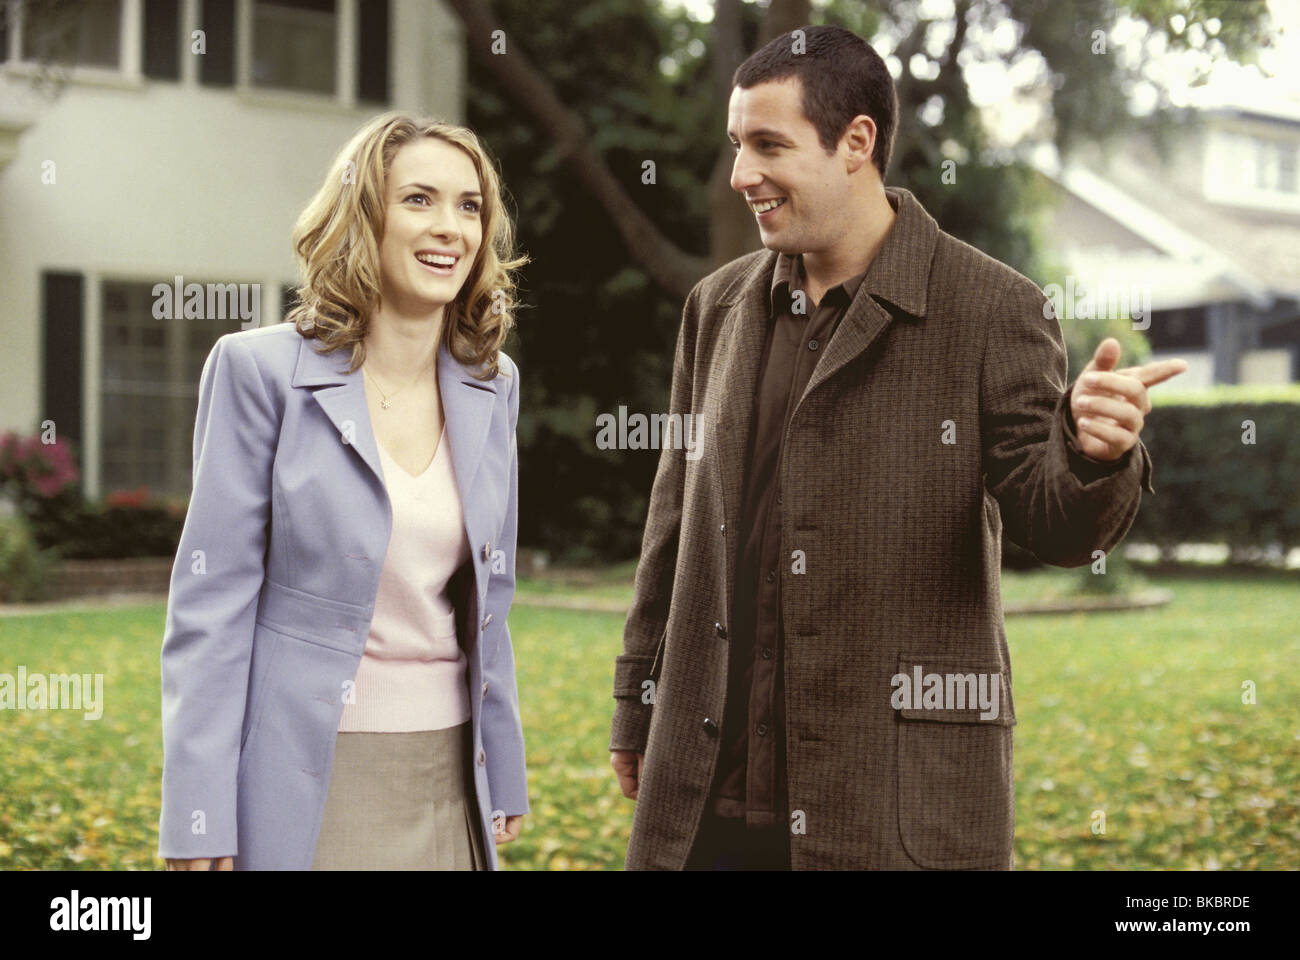 adam sandler in mr deeds Watch video directed by steven brill with adam sandler, winona ryder, john turturro, allen covert a sweet-natured, small-town guy inherits a controlling stake in a media conglomerate and begins to do business his way.